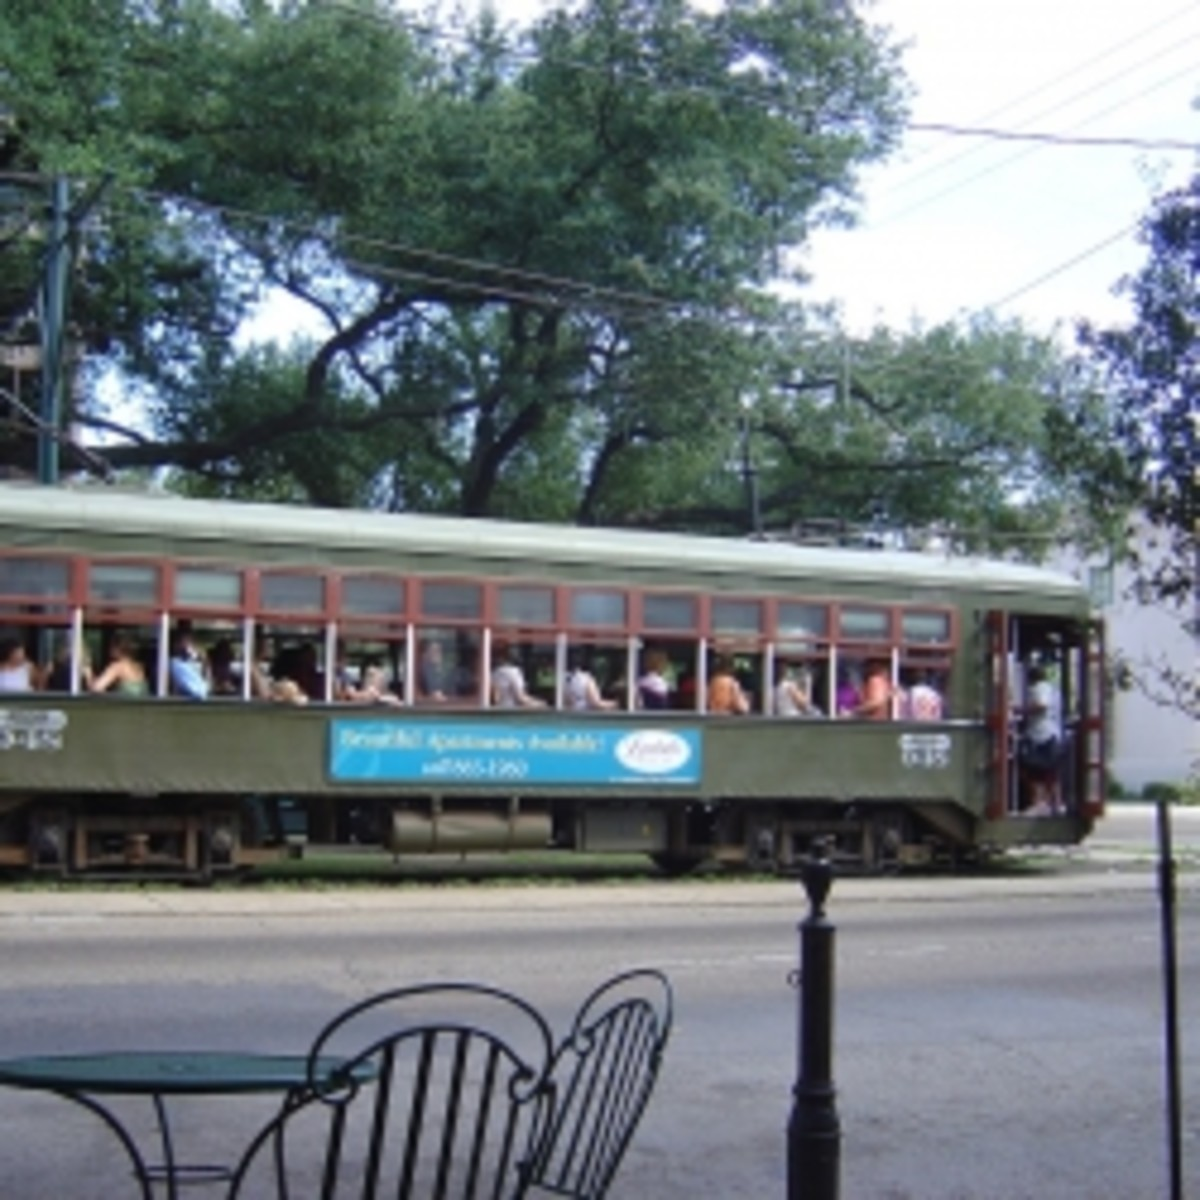 The Sights and Sounds of a New Orleans Streetcar